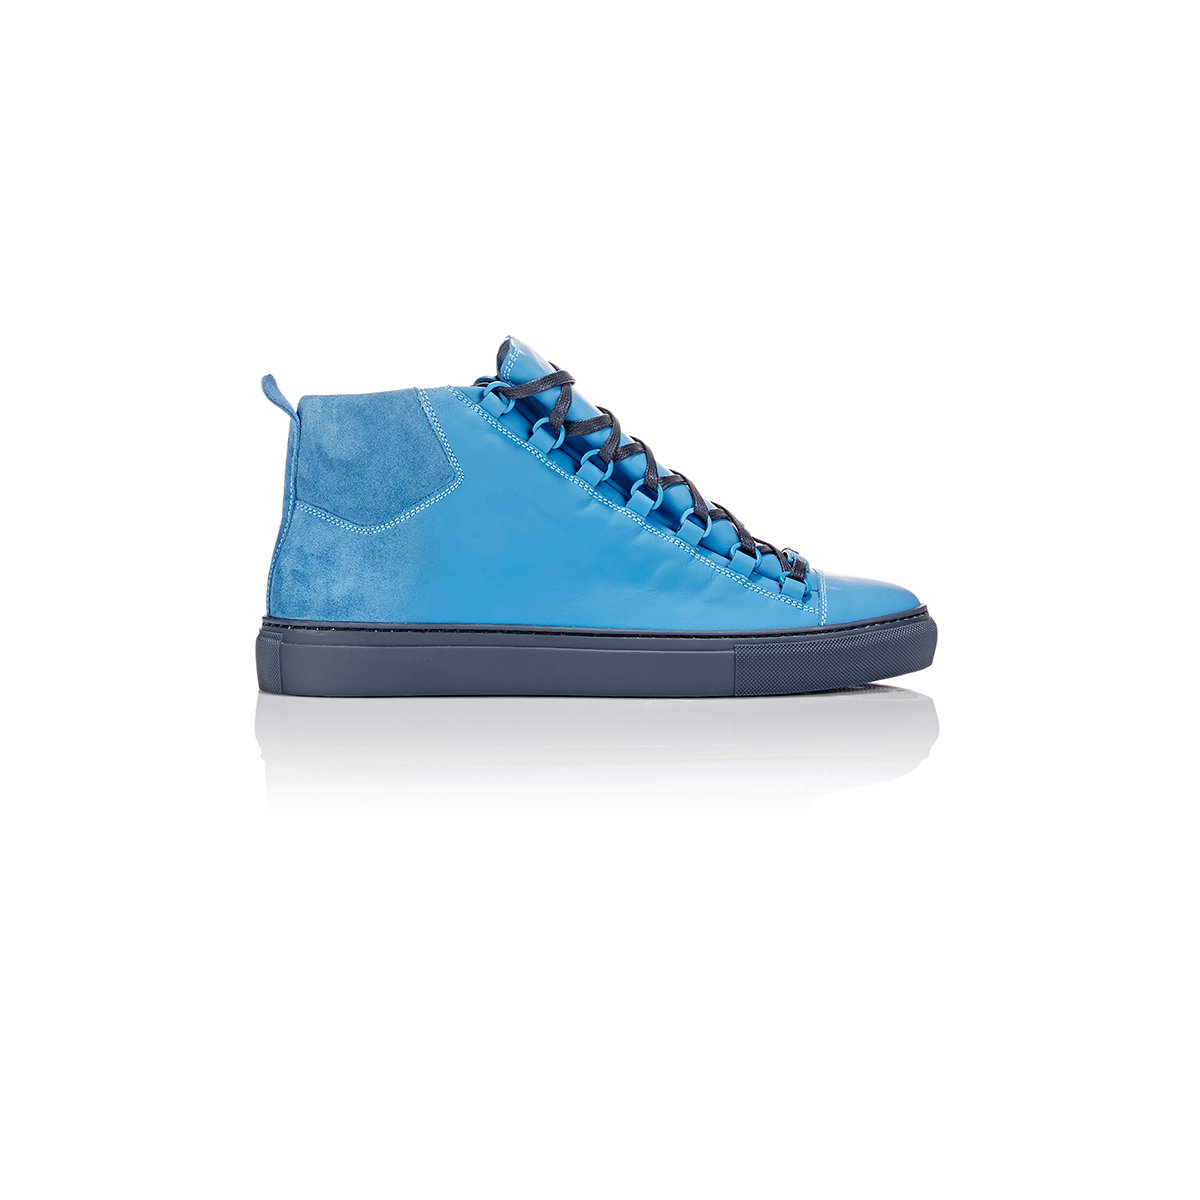 490926b6f3b6 Lyst - Balenciaga Arena Sprayed Suede High-Top Sneakers in Blue for Men